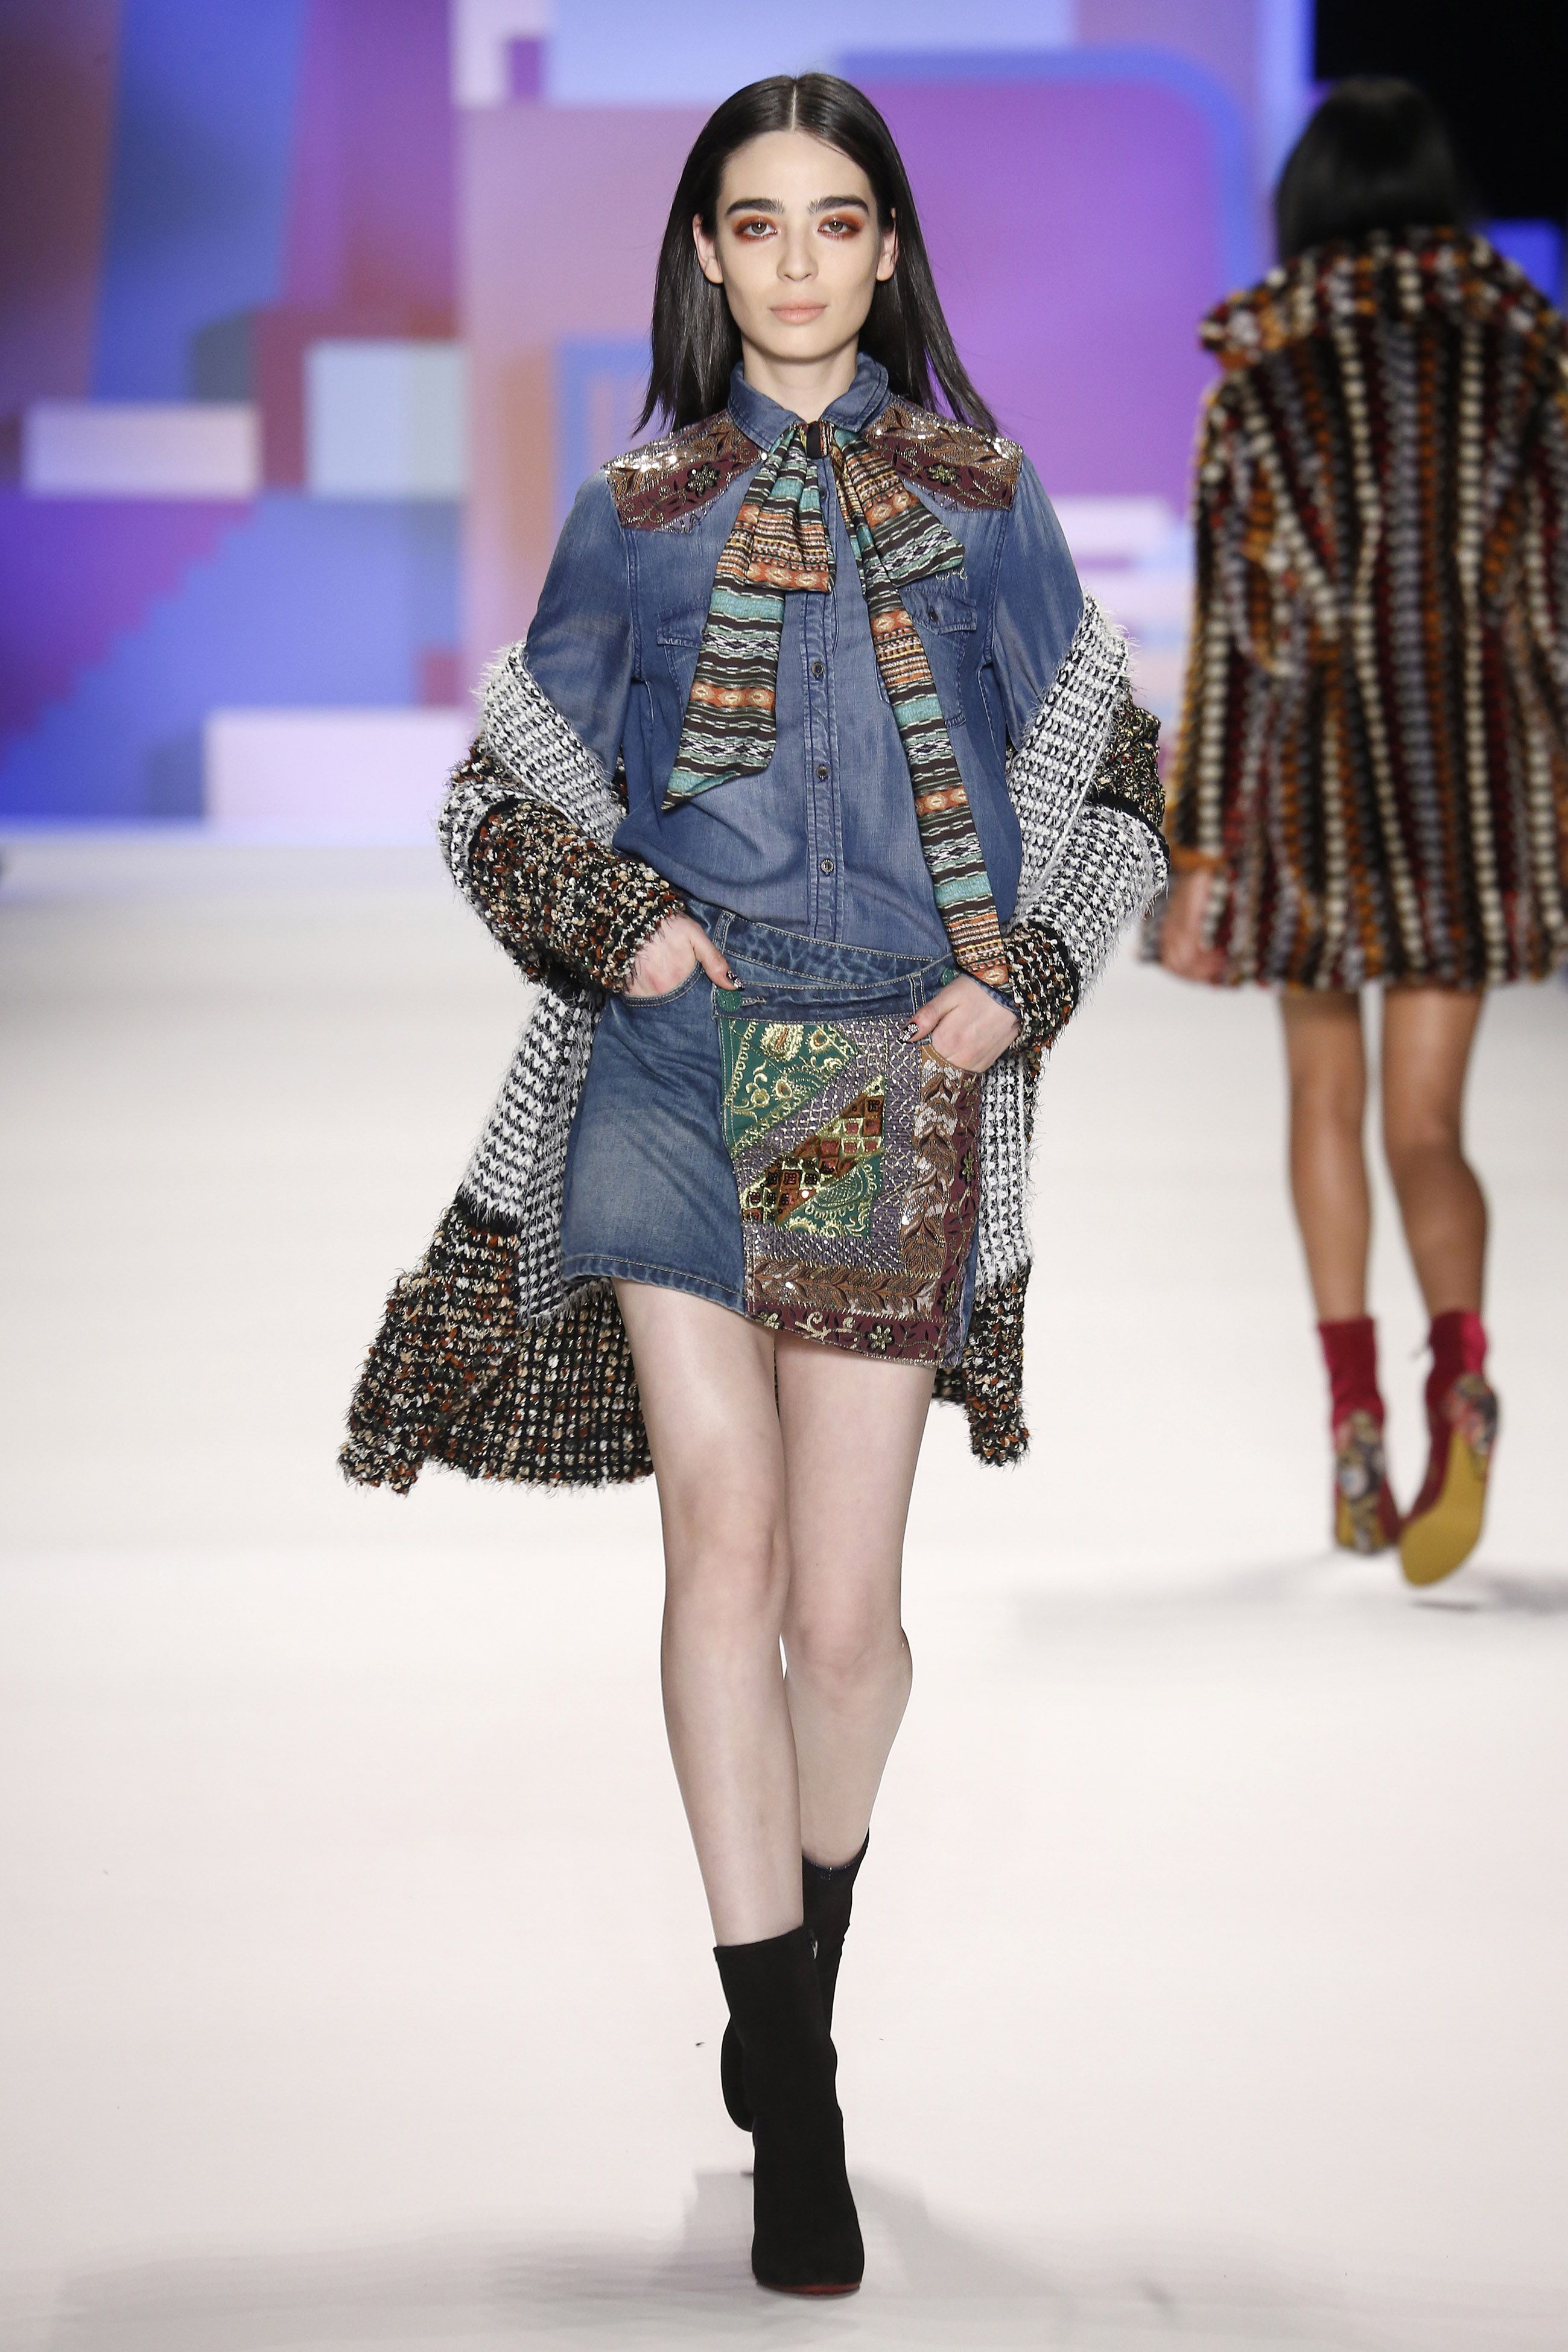 Denim features in Desigual's AW16 collection but in a revised form. Denim shows its more creative side with embroidery and Hindu details. The new take on jeans includes tweed and men's tailoring fabrics